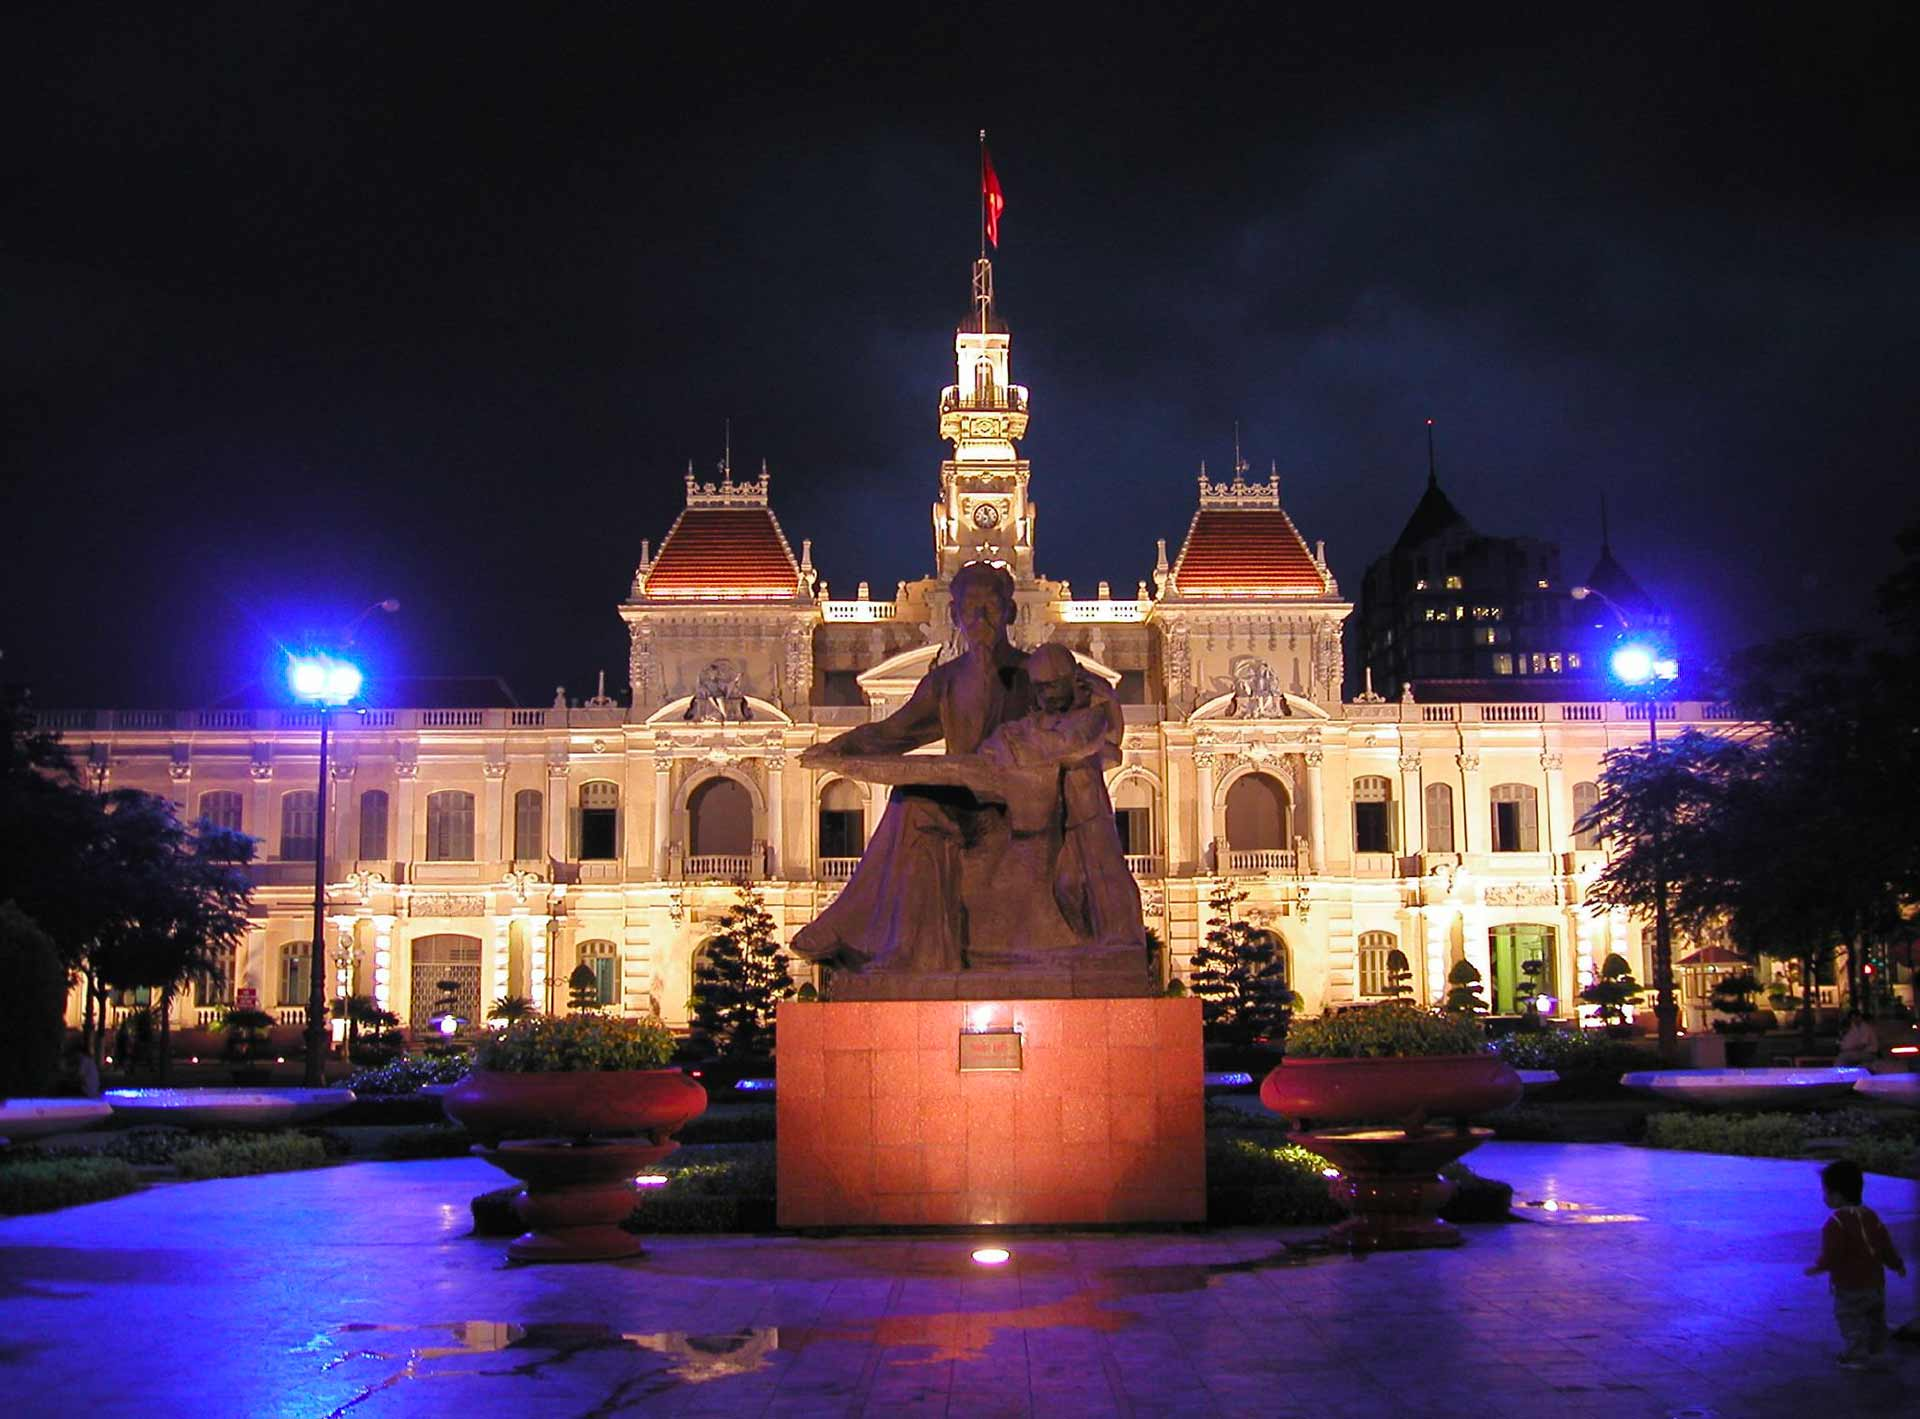 Ho Chi Minh City Hall 4